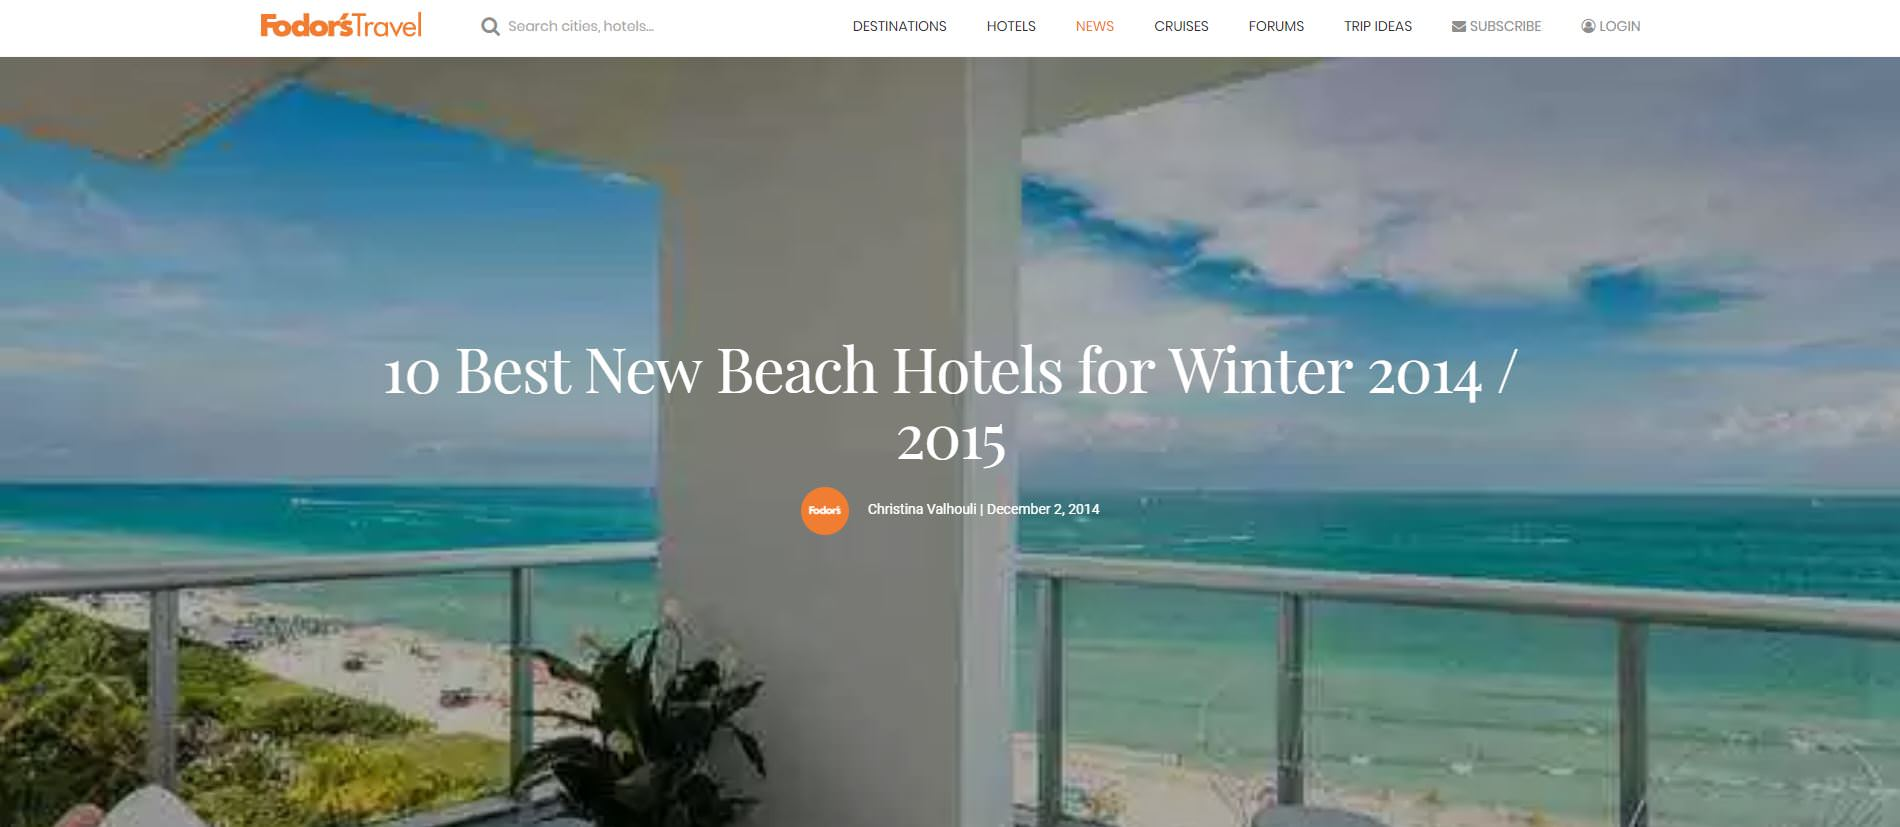 9. Fodors (Best Beach hotels 2014-2015).JPG